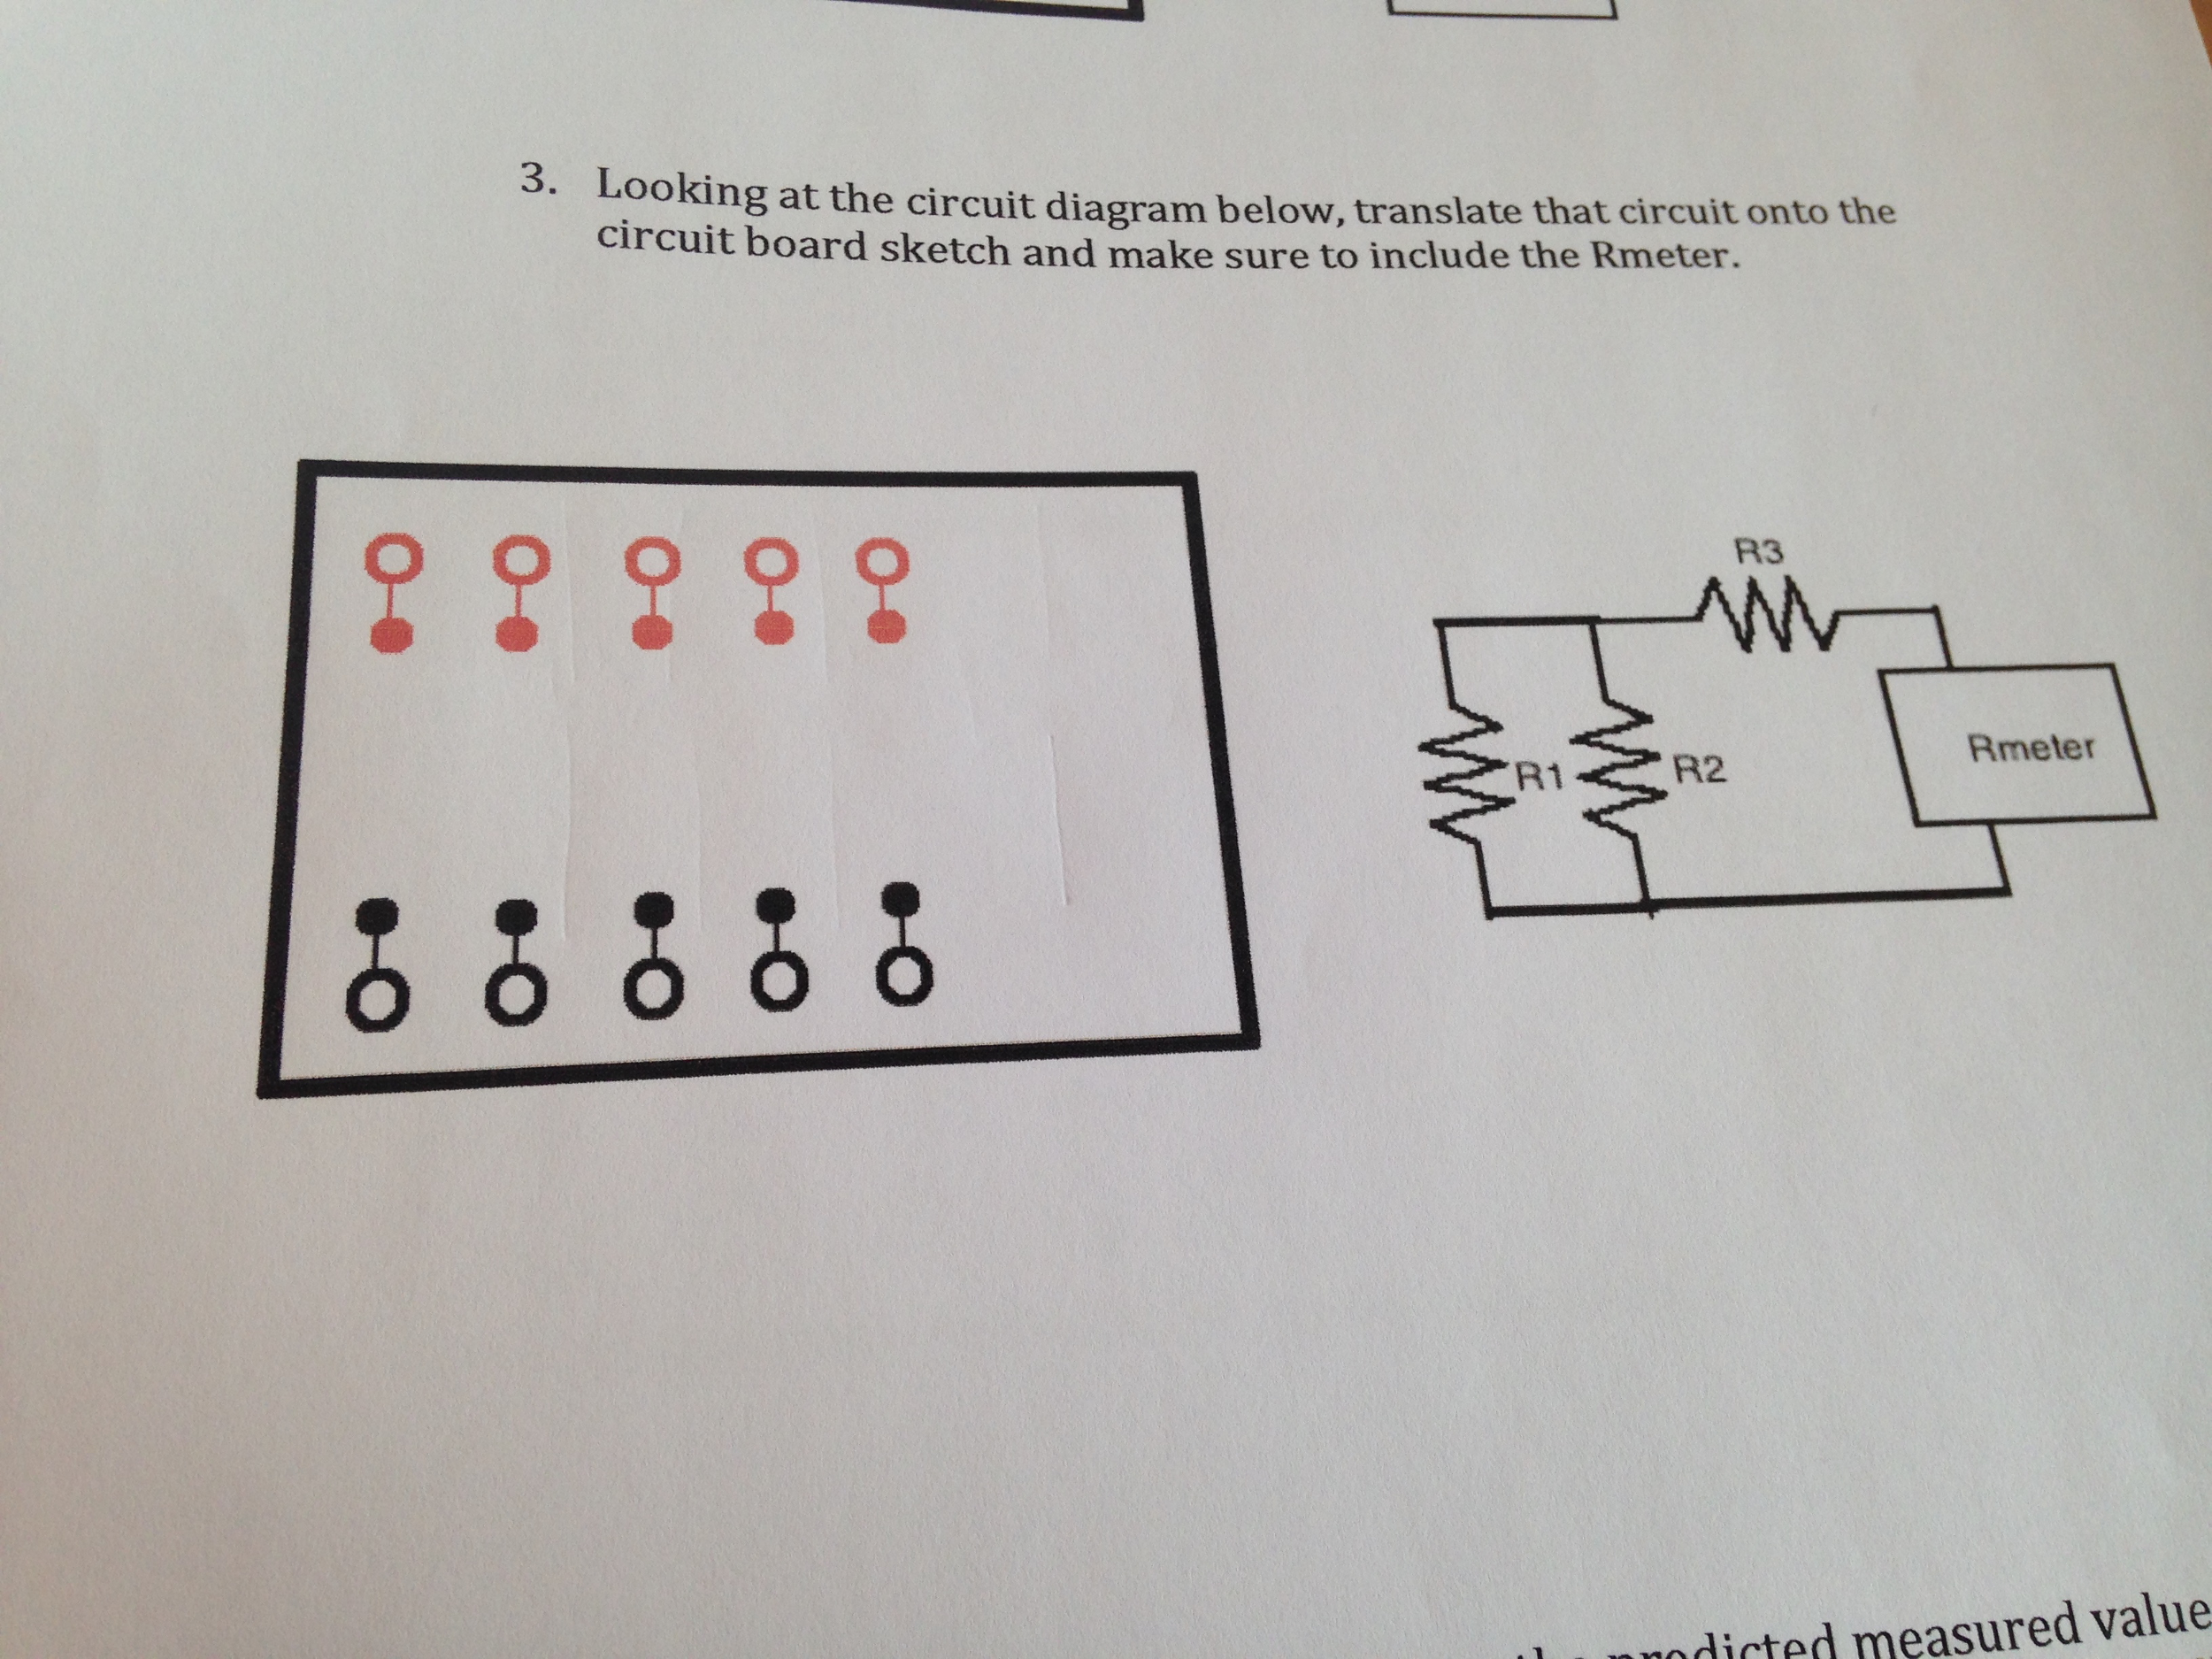 Translate That Circuit Onto The Circuit Board Sket Cheggcom - Circuit diagram make